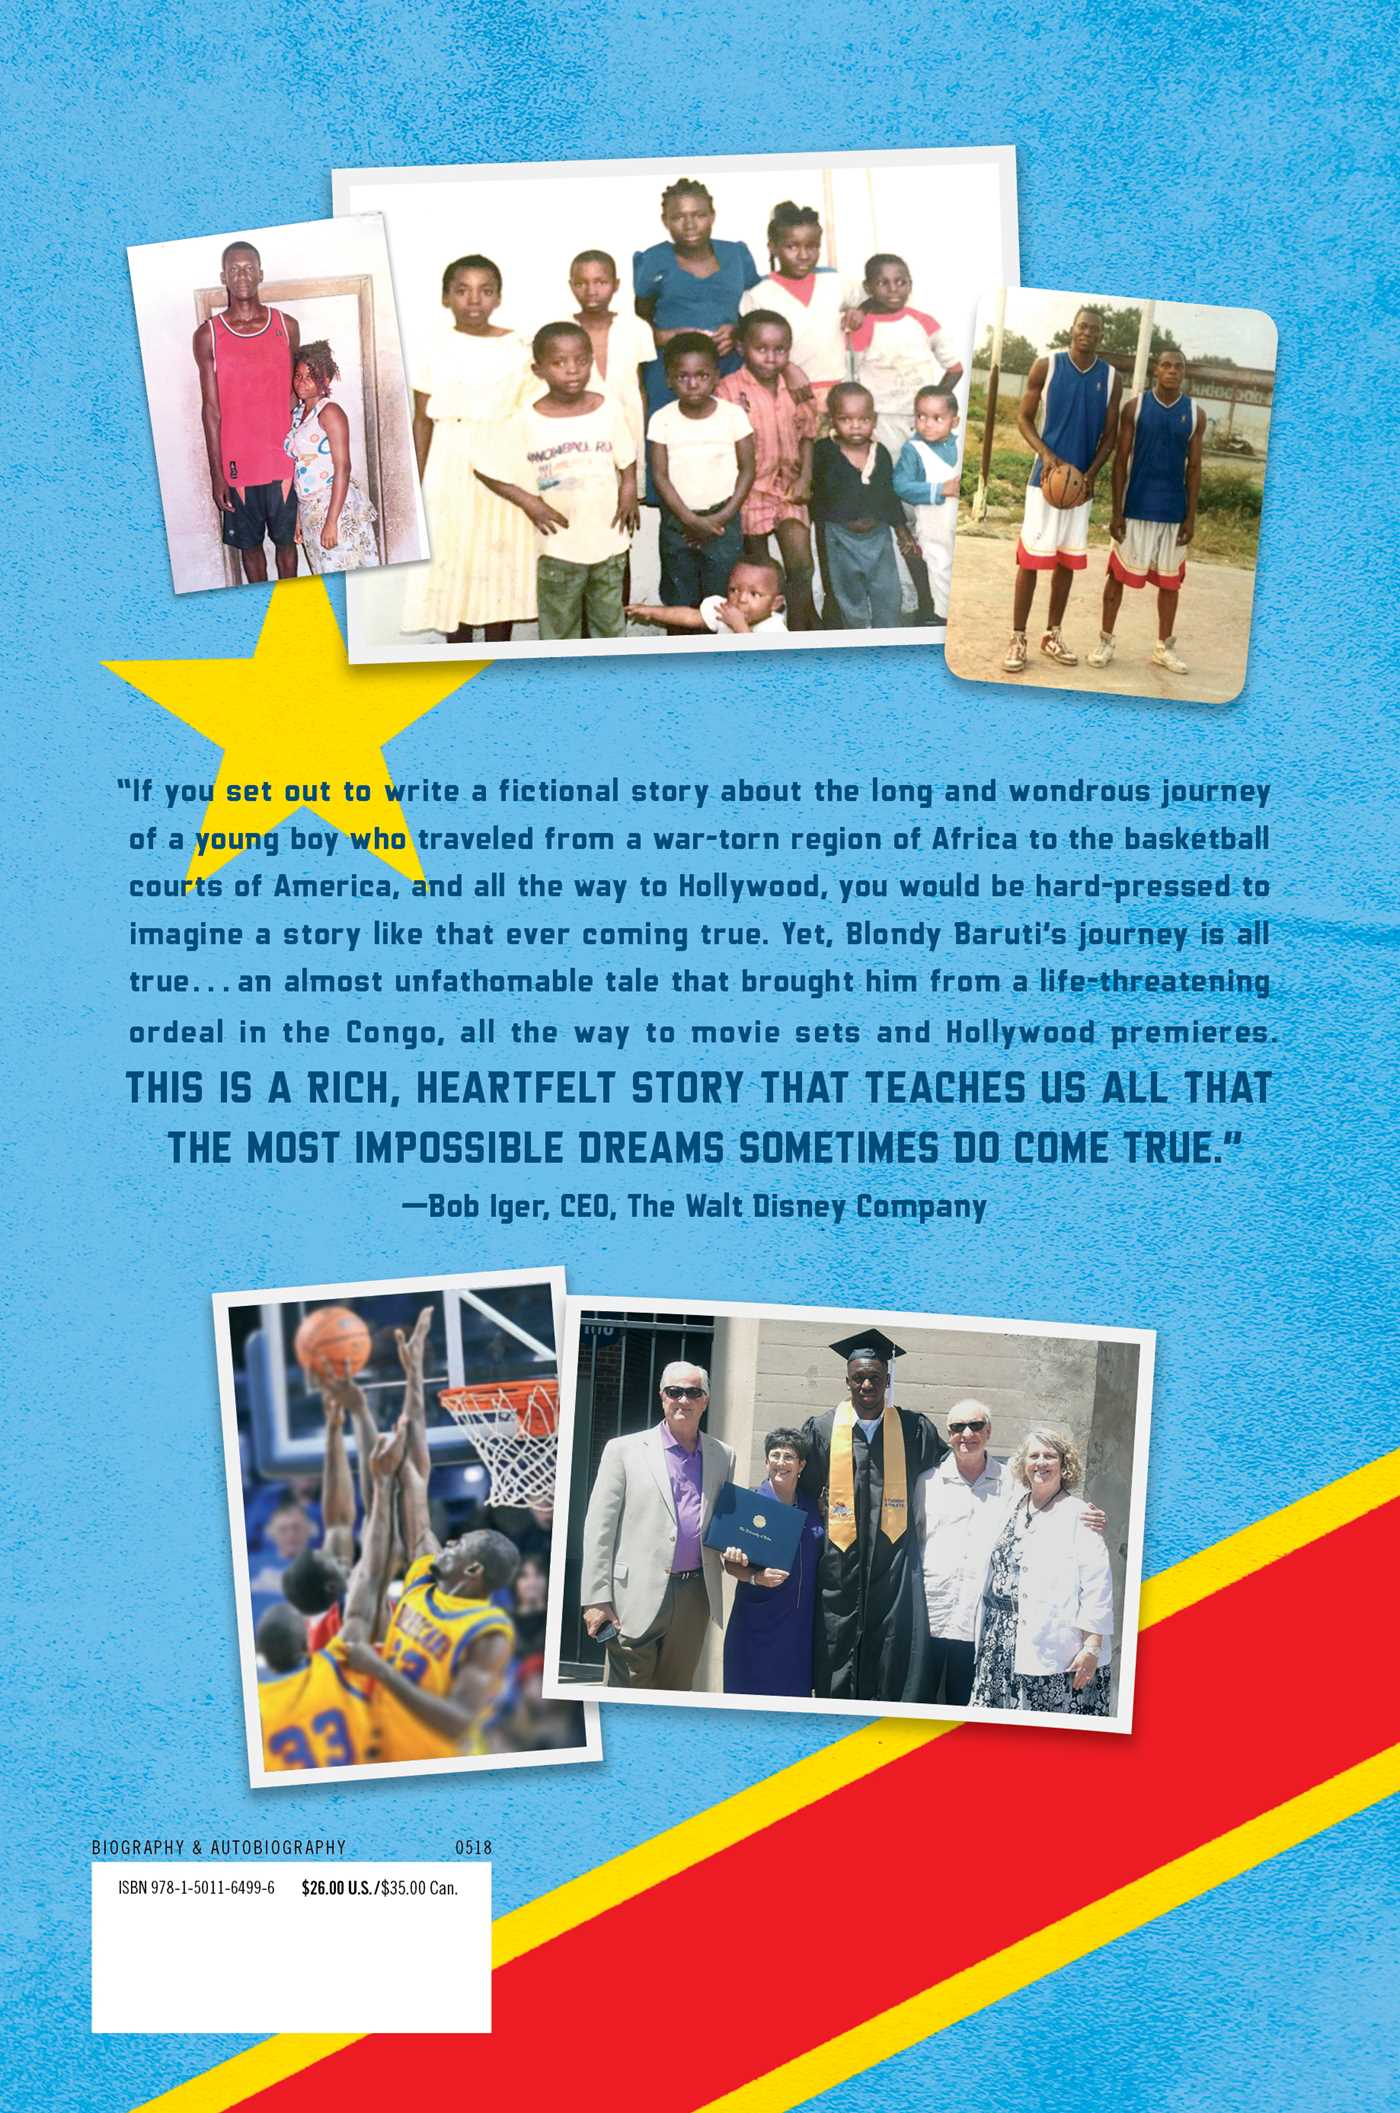 The incredible true story of blondy baruti 9781501164996 hr back